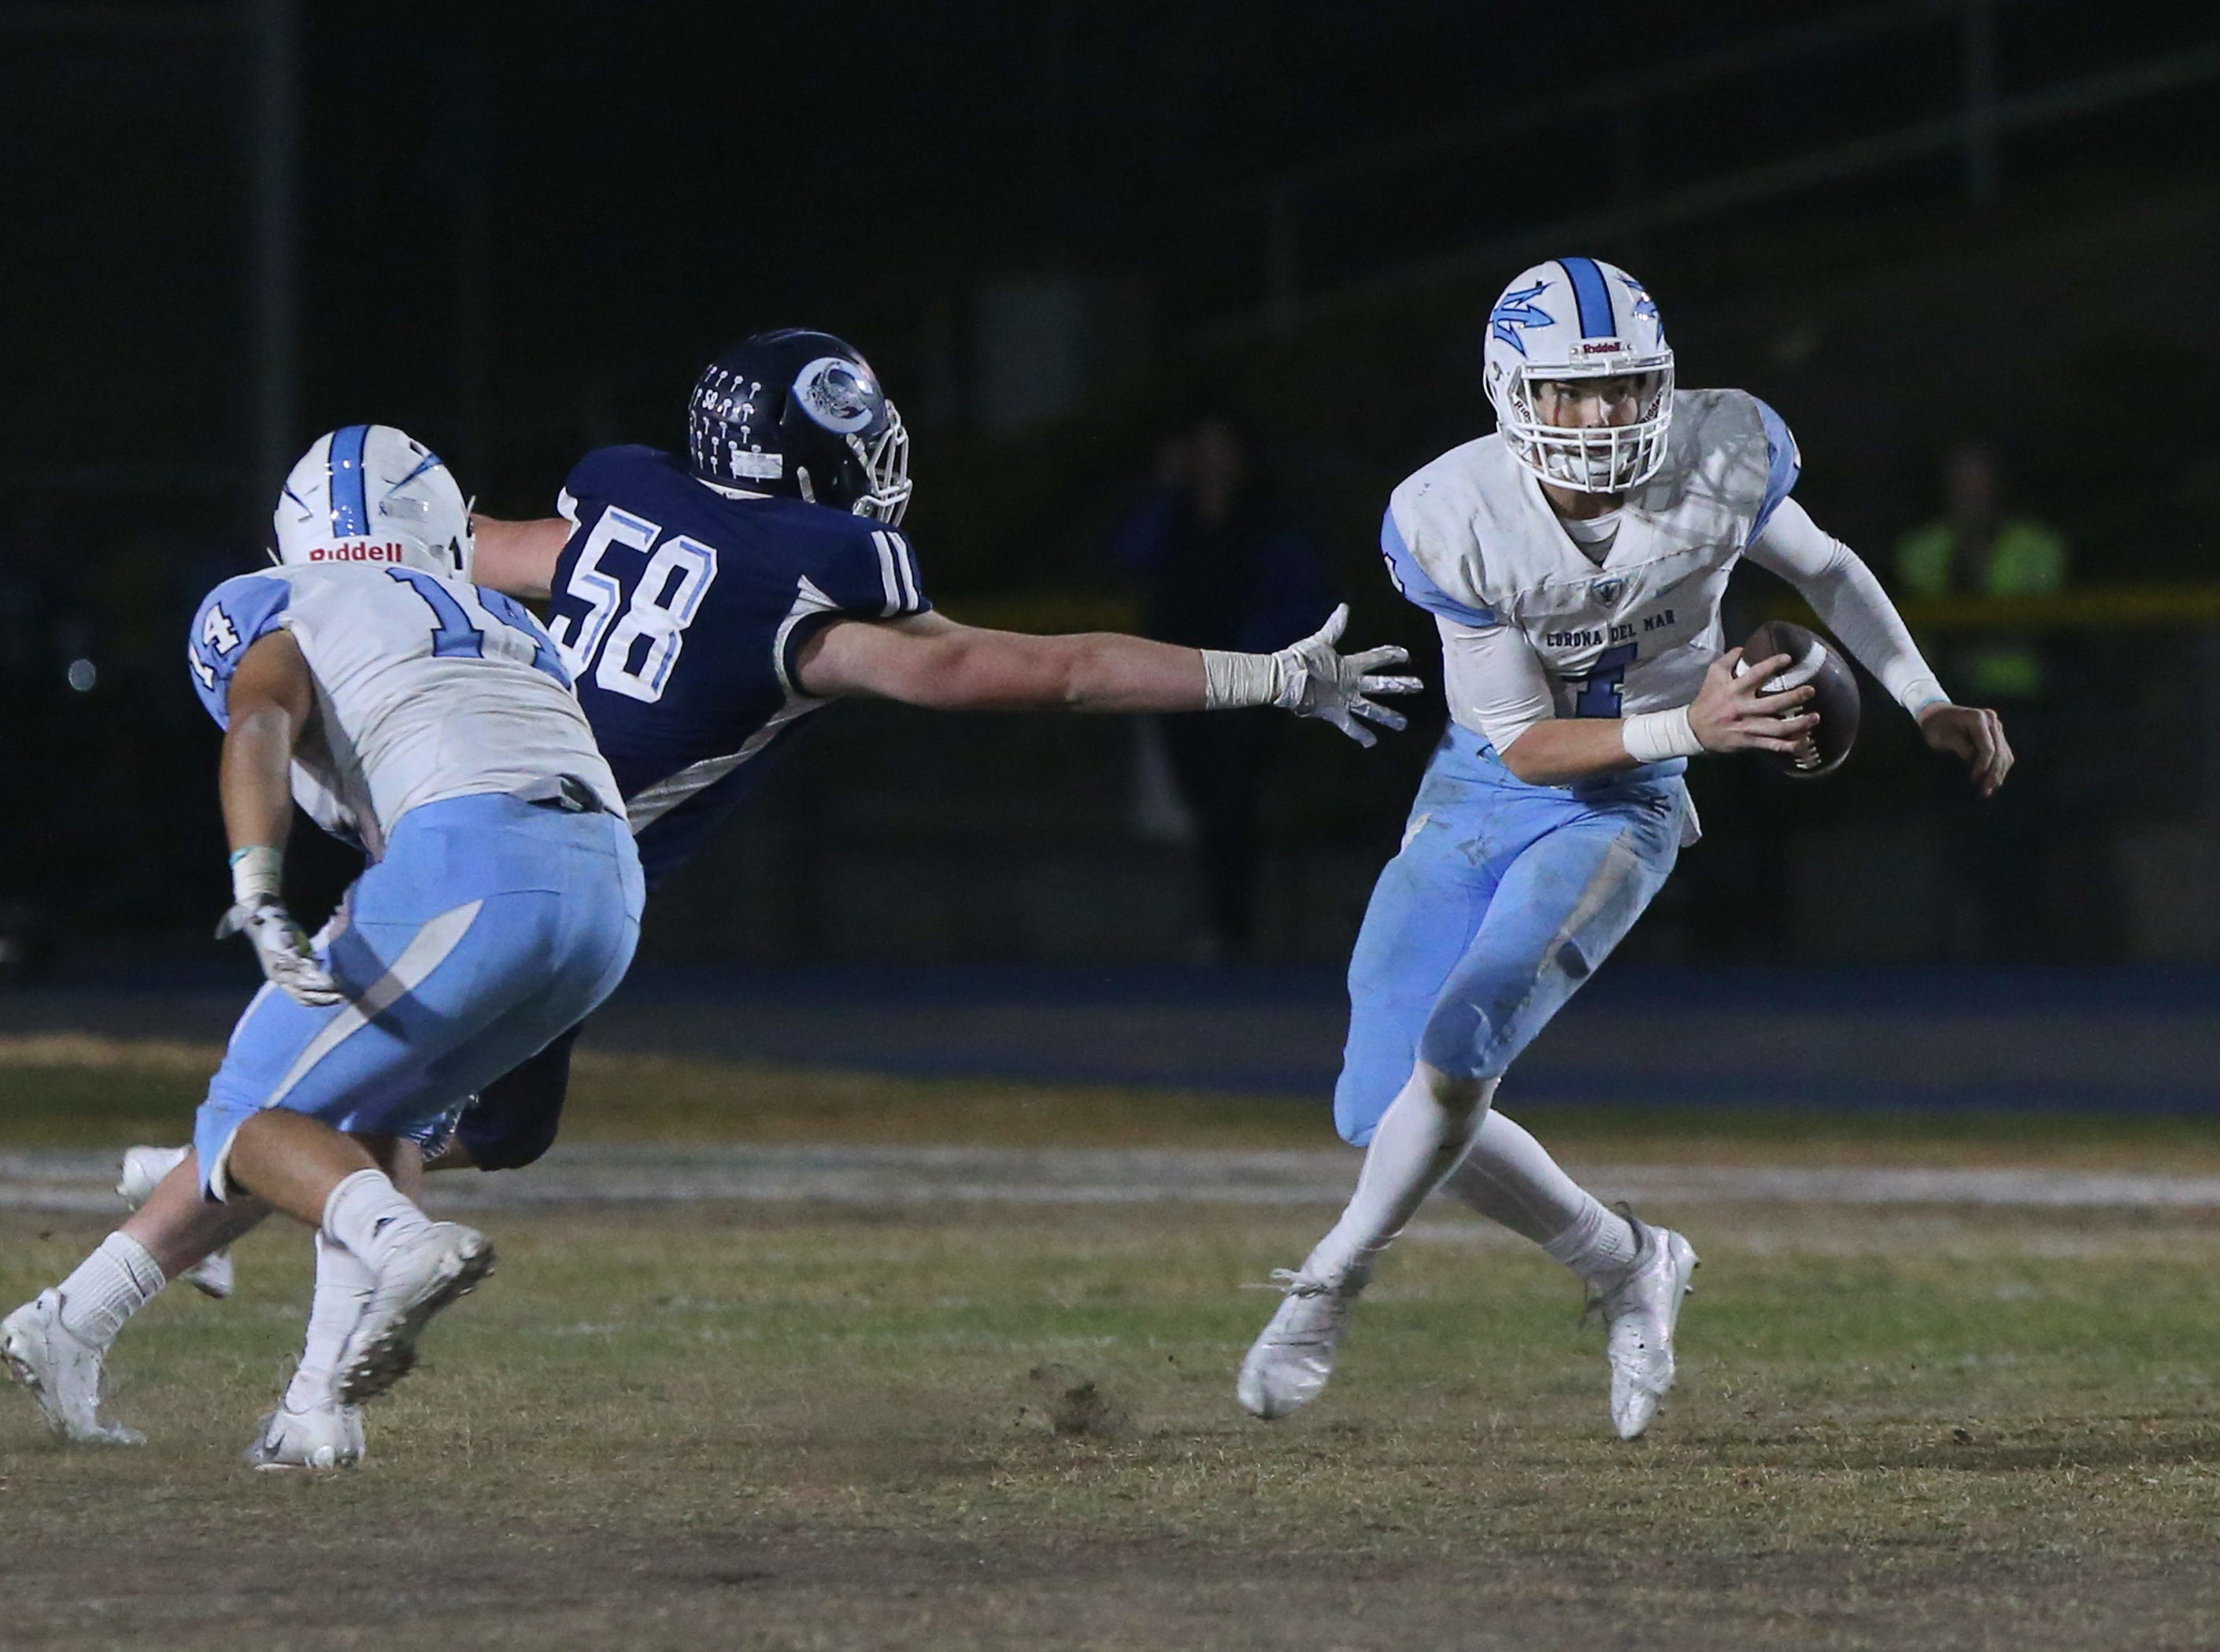 Camarillo High's Aaron Lavelle (58) tries to reach Corona del Mar quarterback Ethan Garbers during their CIF-SS Division 4 semifinal game on Friday.